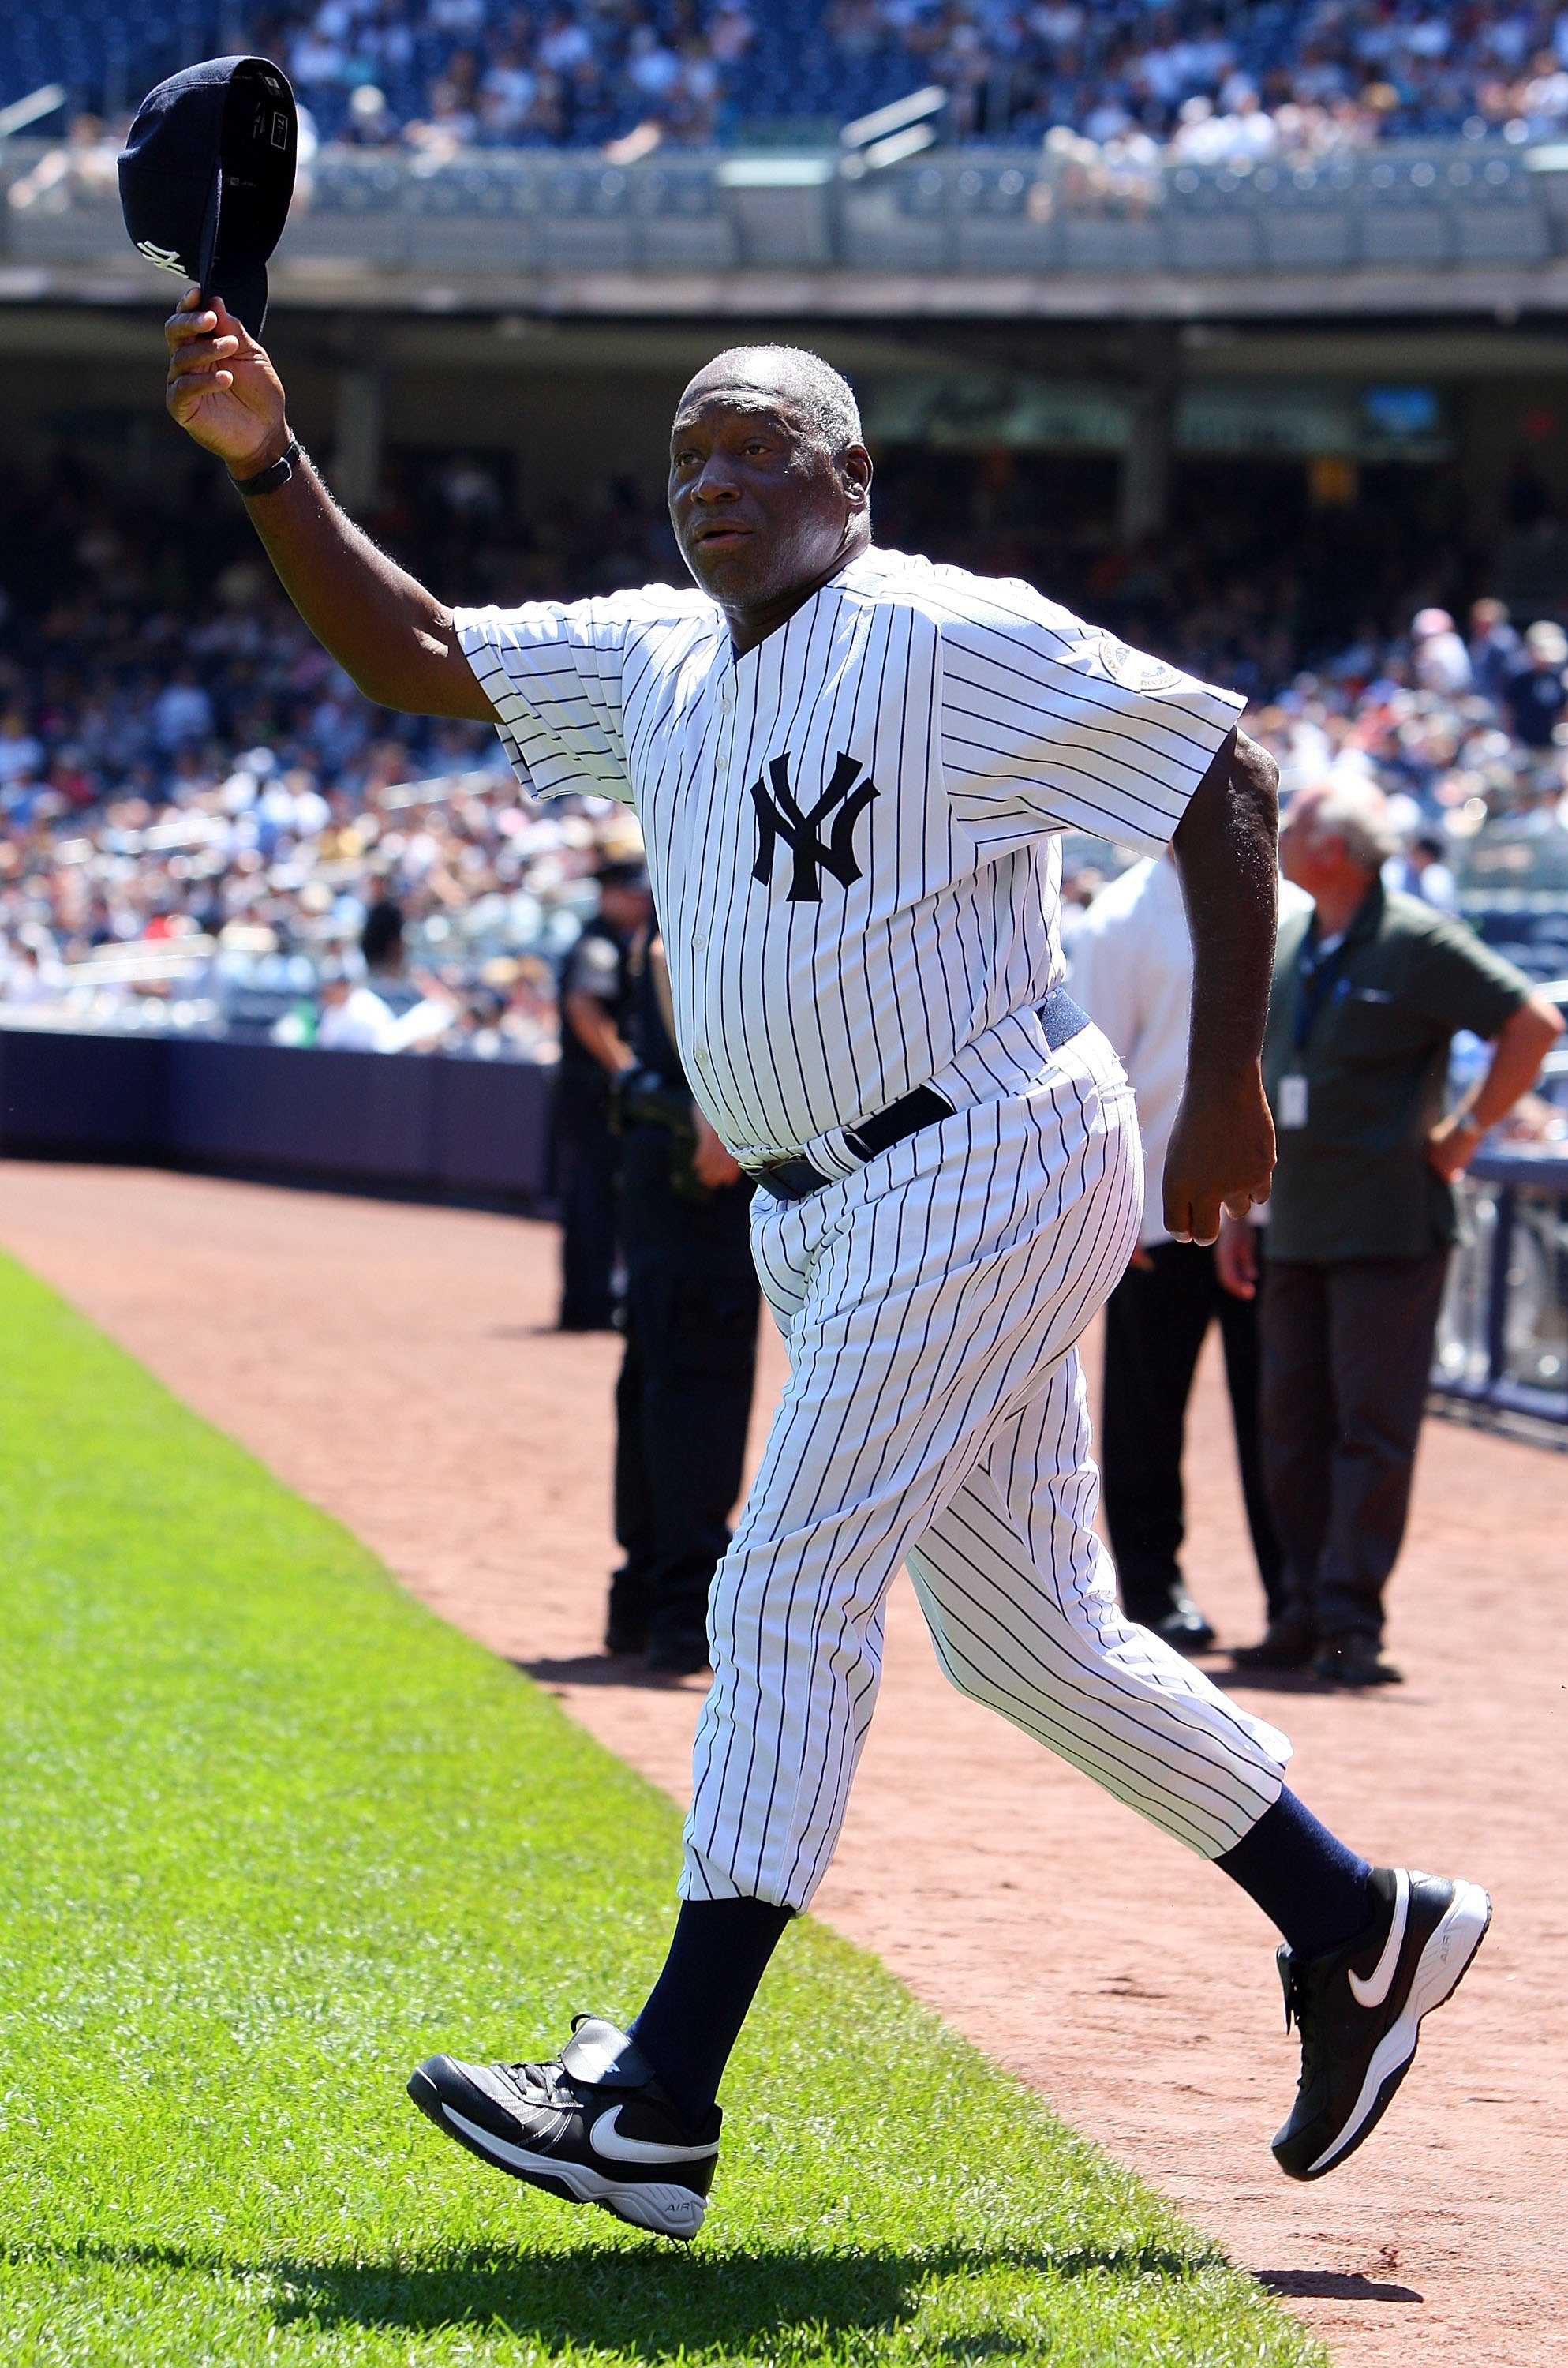 NEW YORK - JULY 19:  Former New York Yankee Al Downing waves to the crowd during the teams 63rd Old Timers Day before the game against the Detroit Tigers on July 19, 2009 at Yankee Stadium in the Bronx borough of New York City.  (Photo by Jim McIsaac/Gett